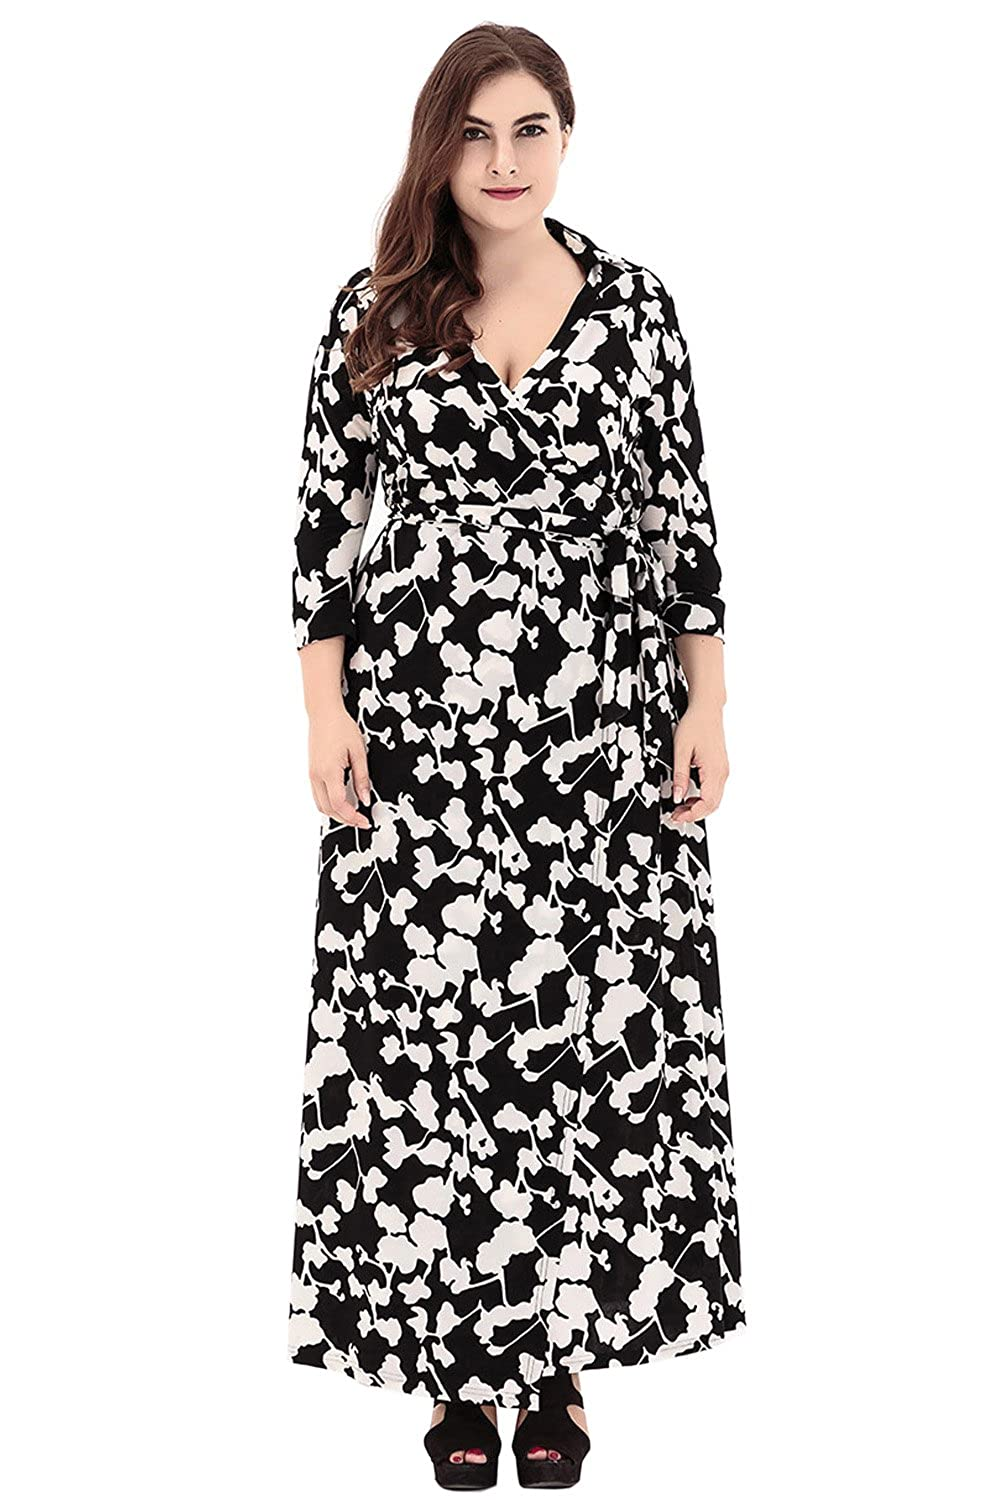 Muslim Women Long Sleeve Dress Islamic Clothing Dubai Kaftan Plus Size Maxi Casual Abaya Turkish Caftan